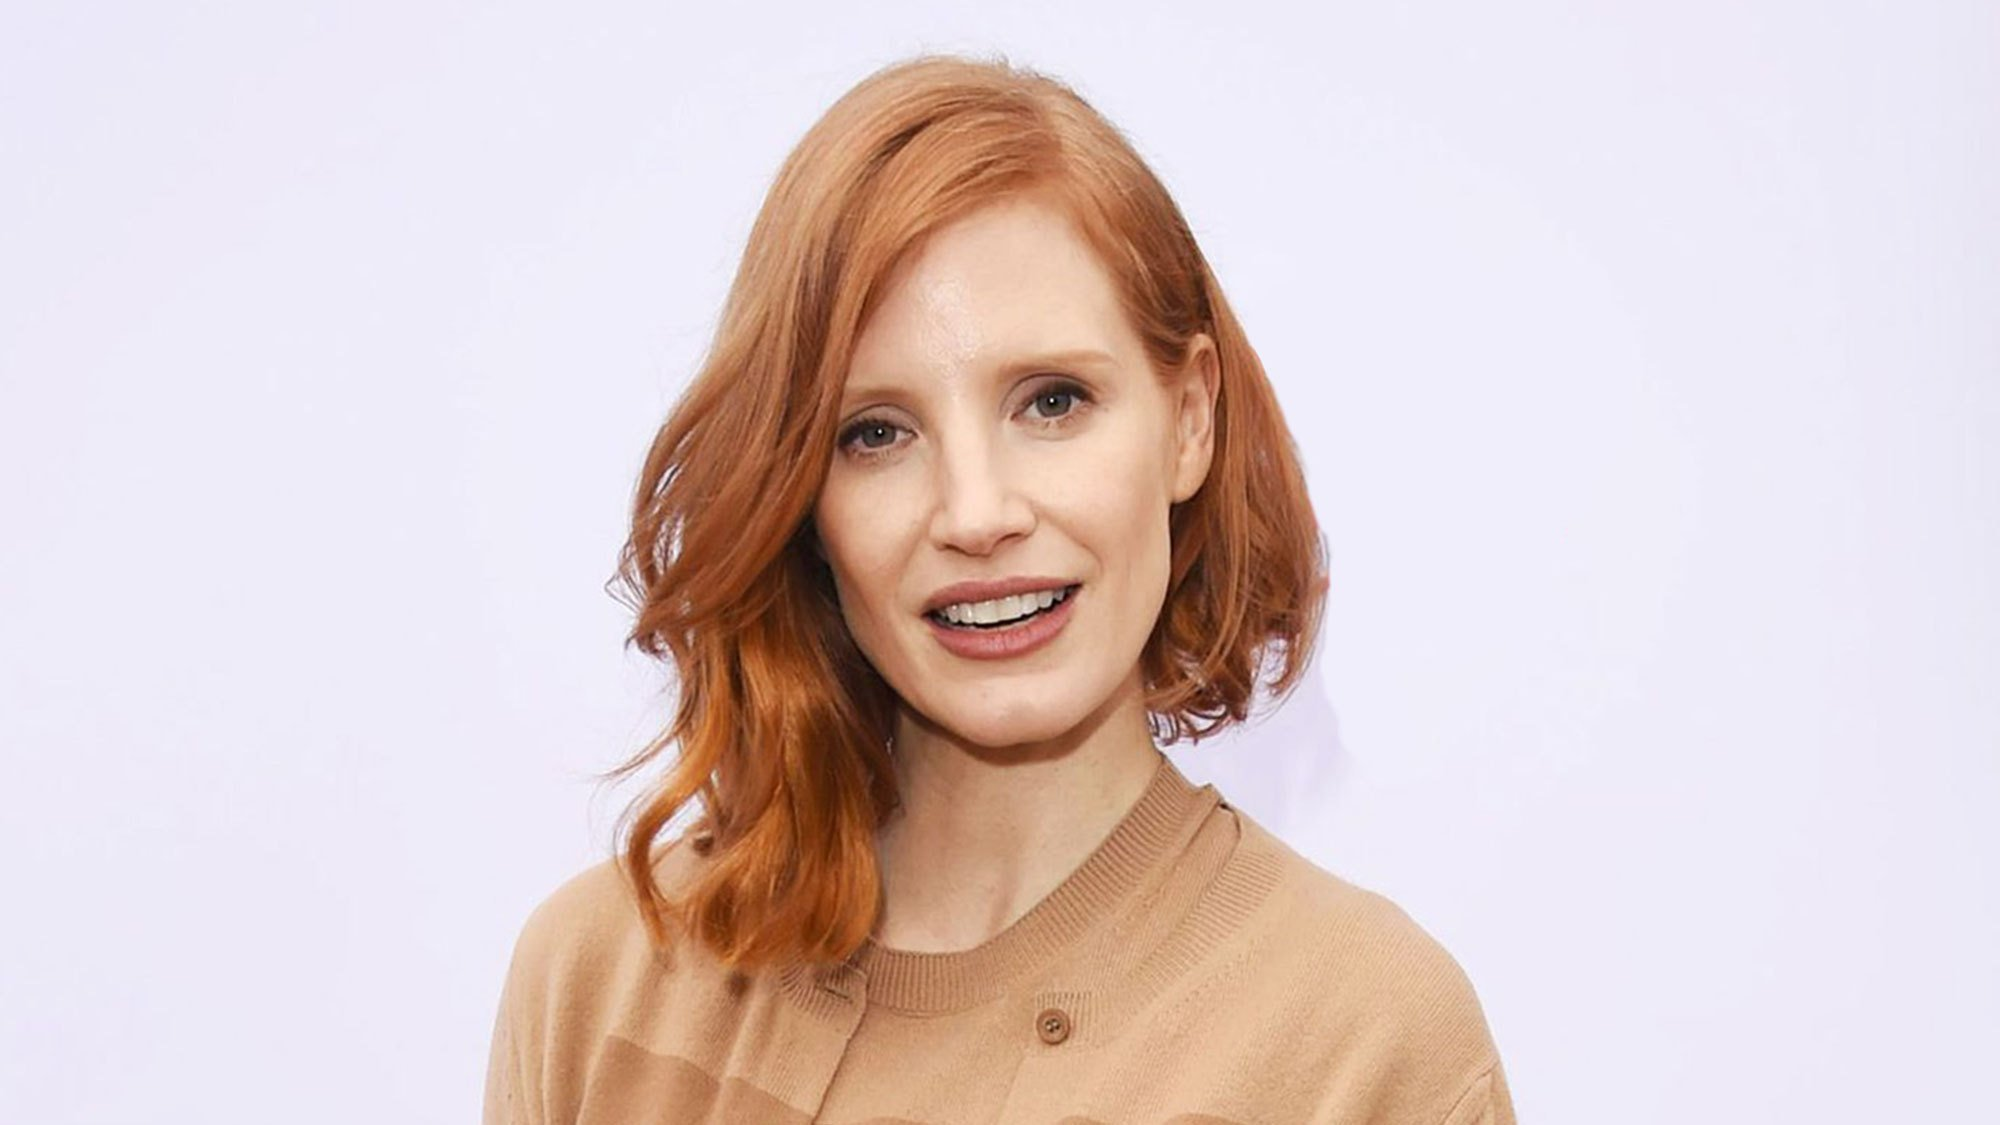 The Best Best Hairstyles For Oval Faces 2019 According To Hair Experts Pictures